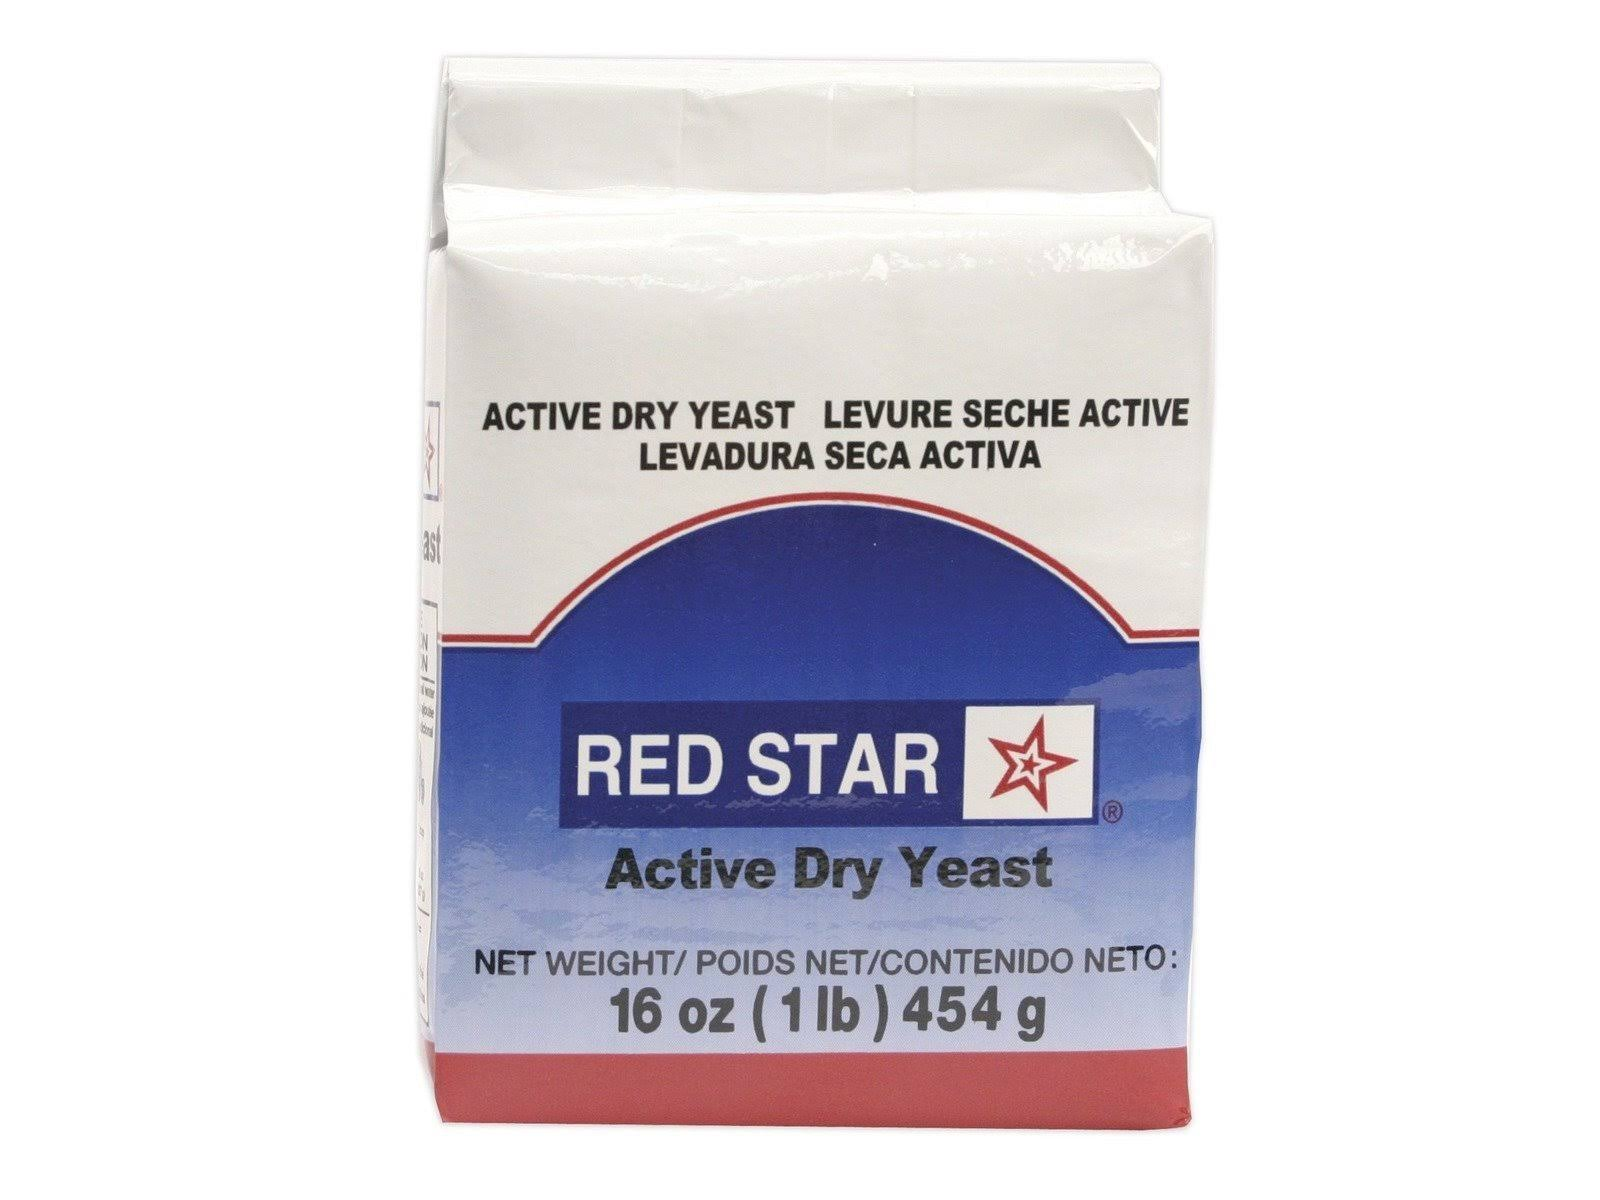 Red Star Vacuum Packed Active Dry Yeast - 1lb